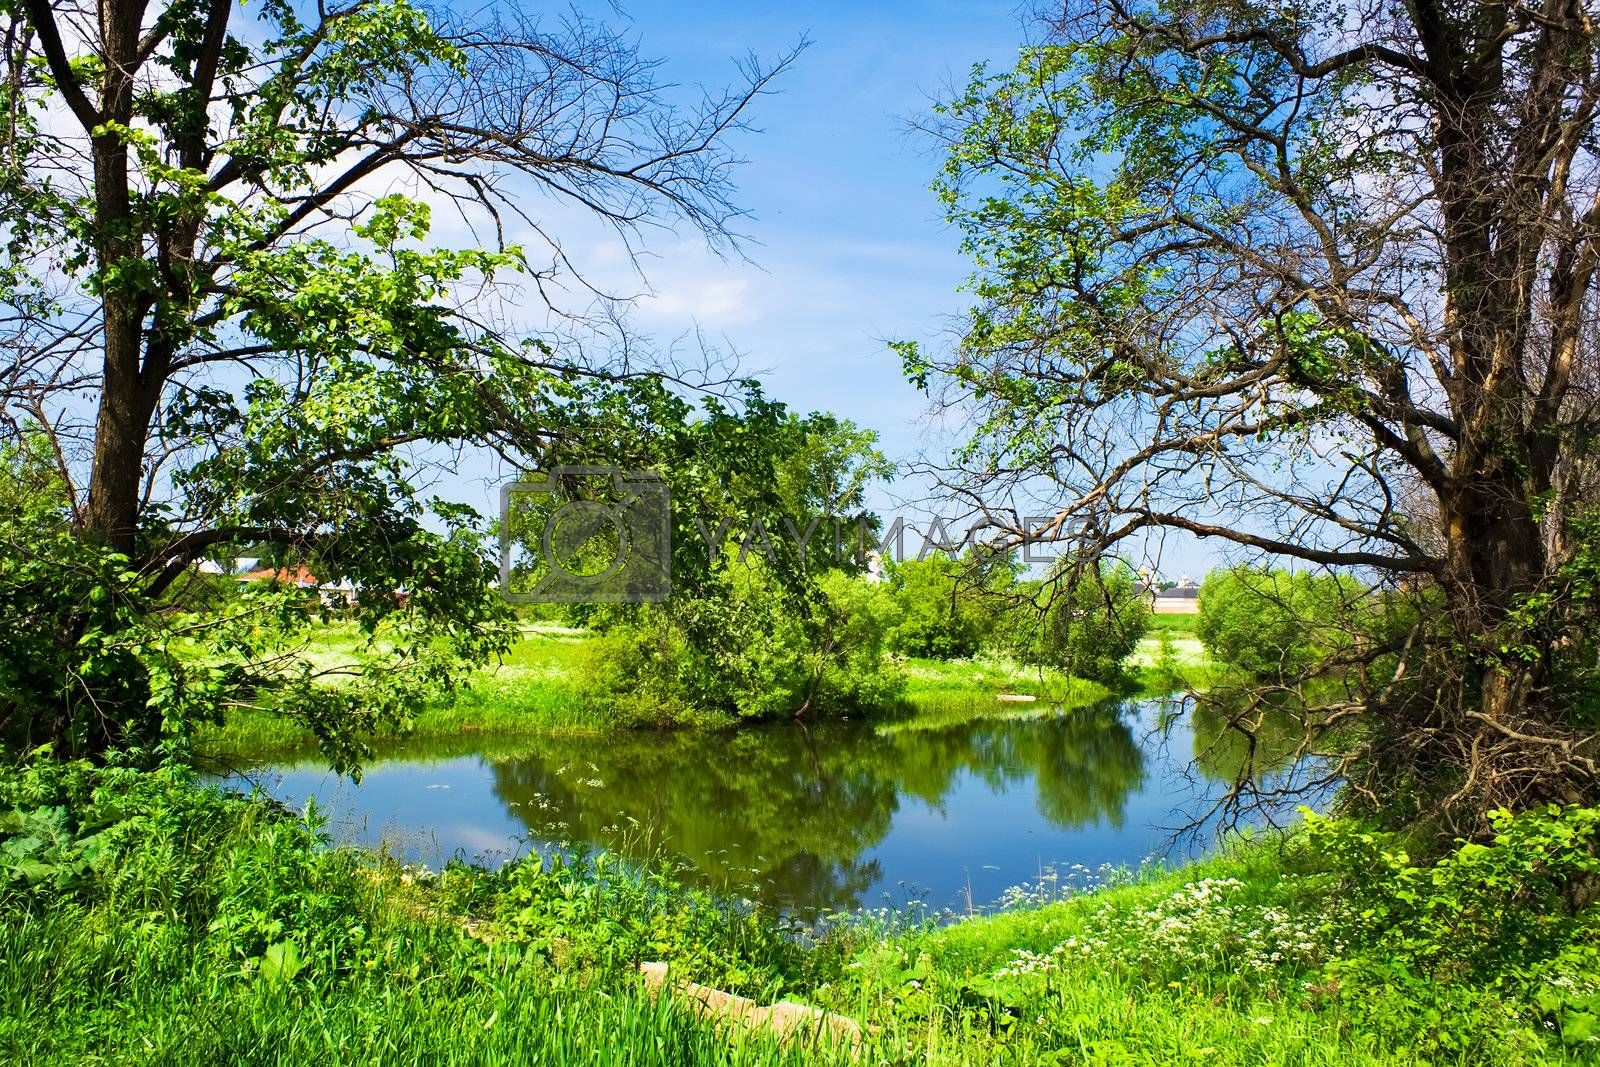 Trees and river in Suzdal, Russia